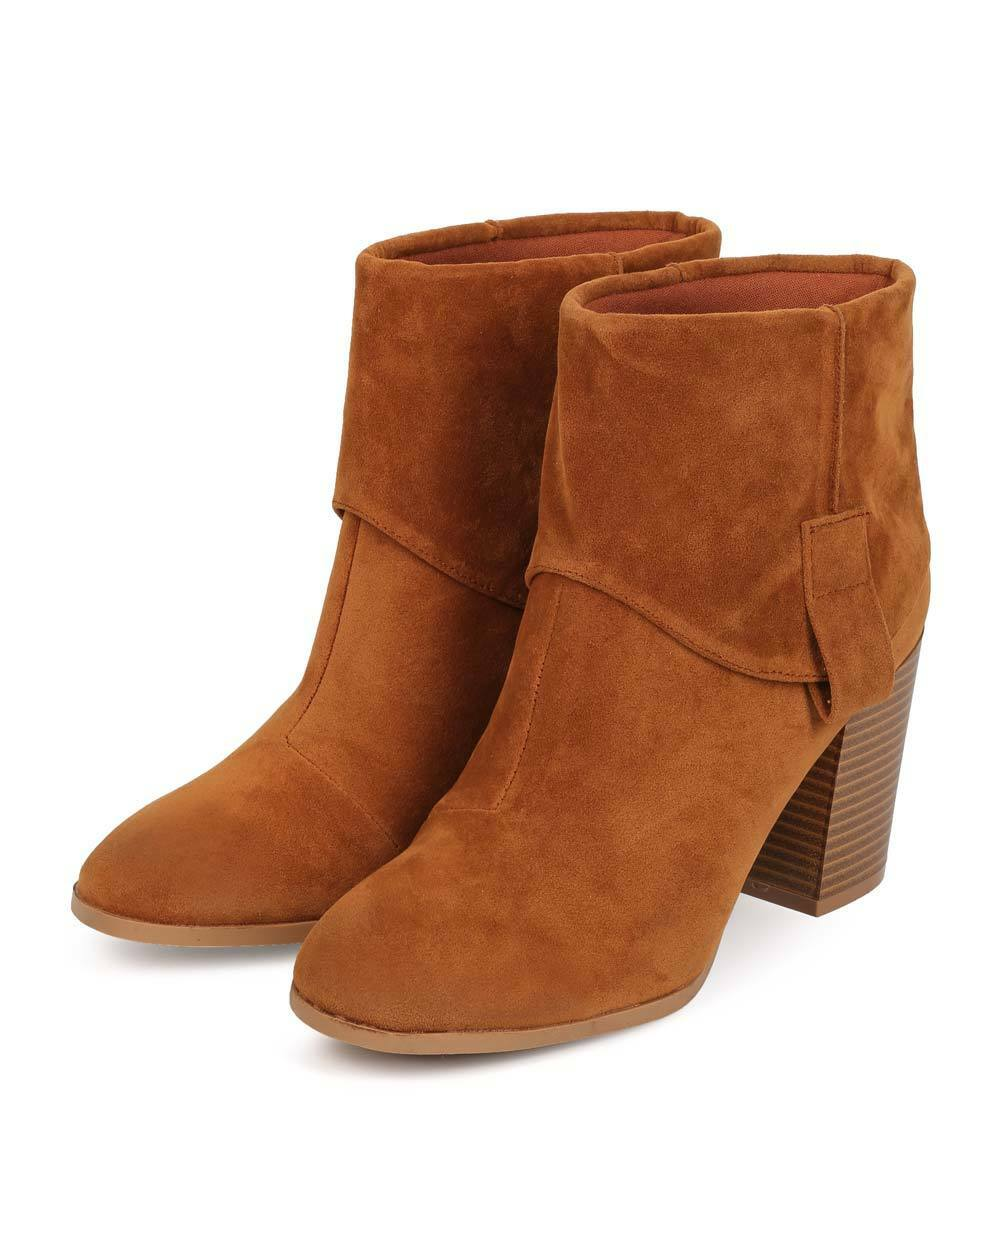 New Women Qupid Wagon-05 Suede Almond Toe Western Foldover Pull On Bootie Size